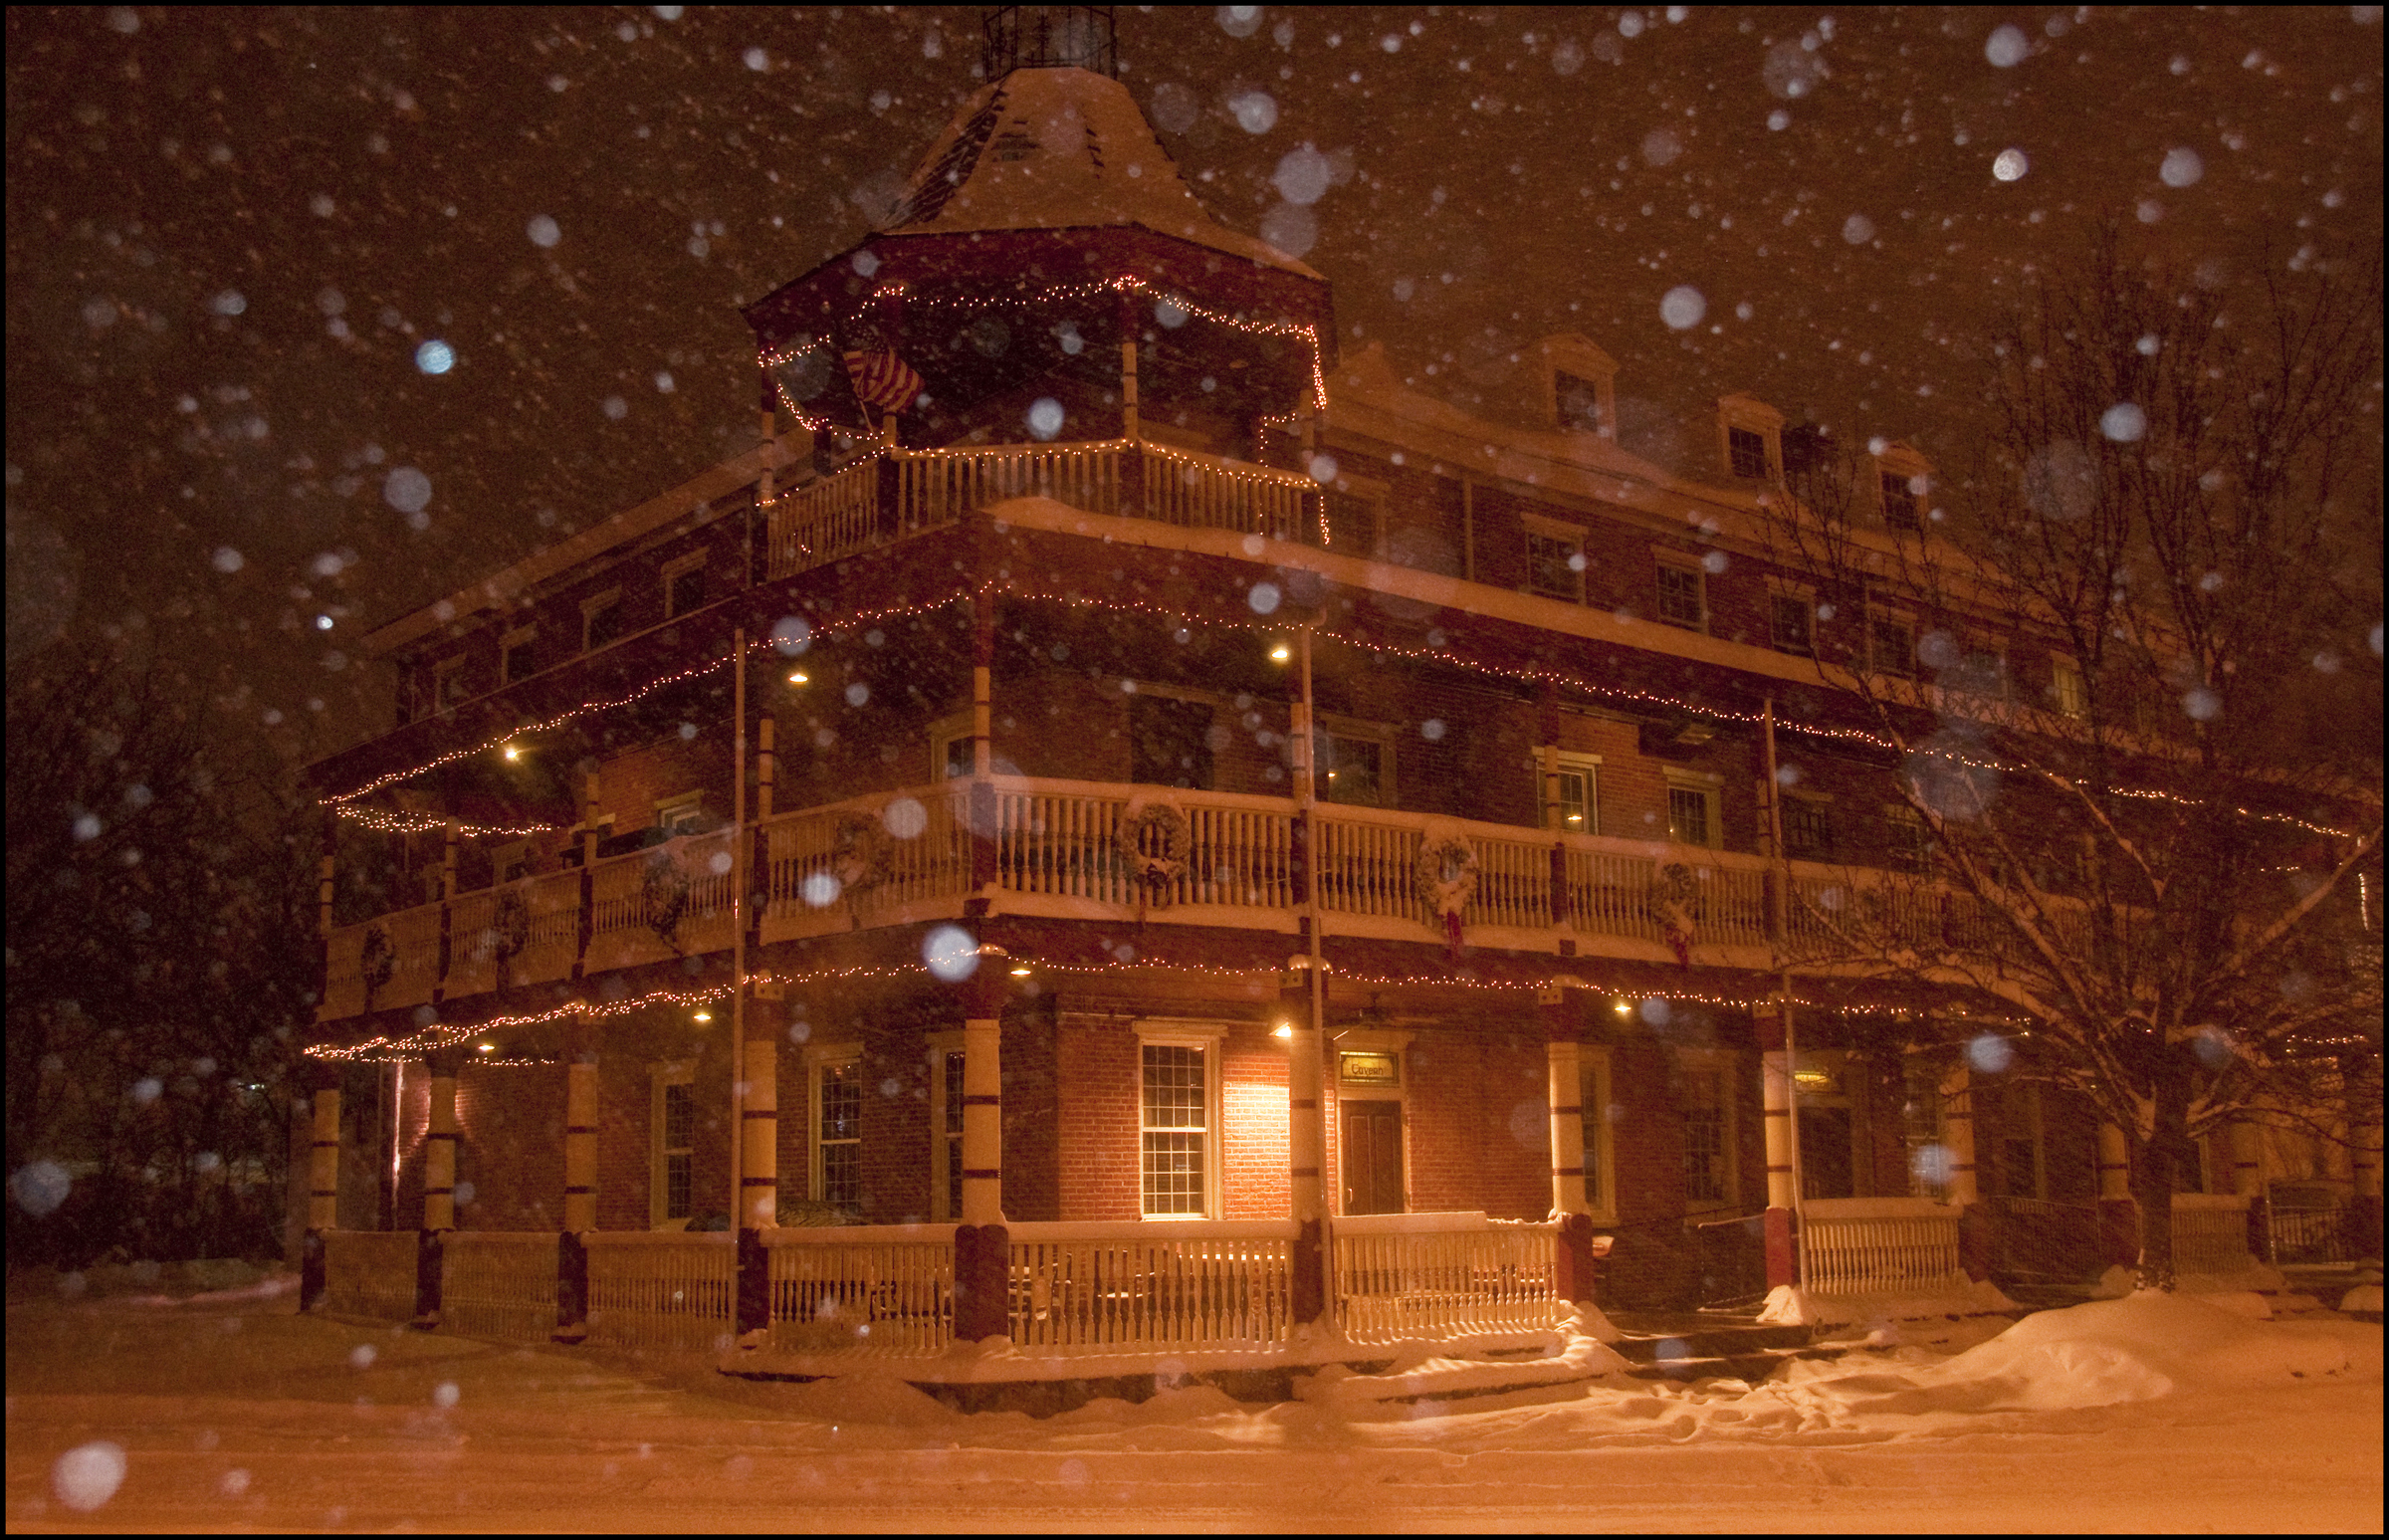 Deerpark Tavern in the snow